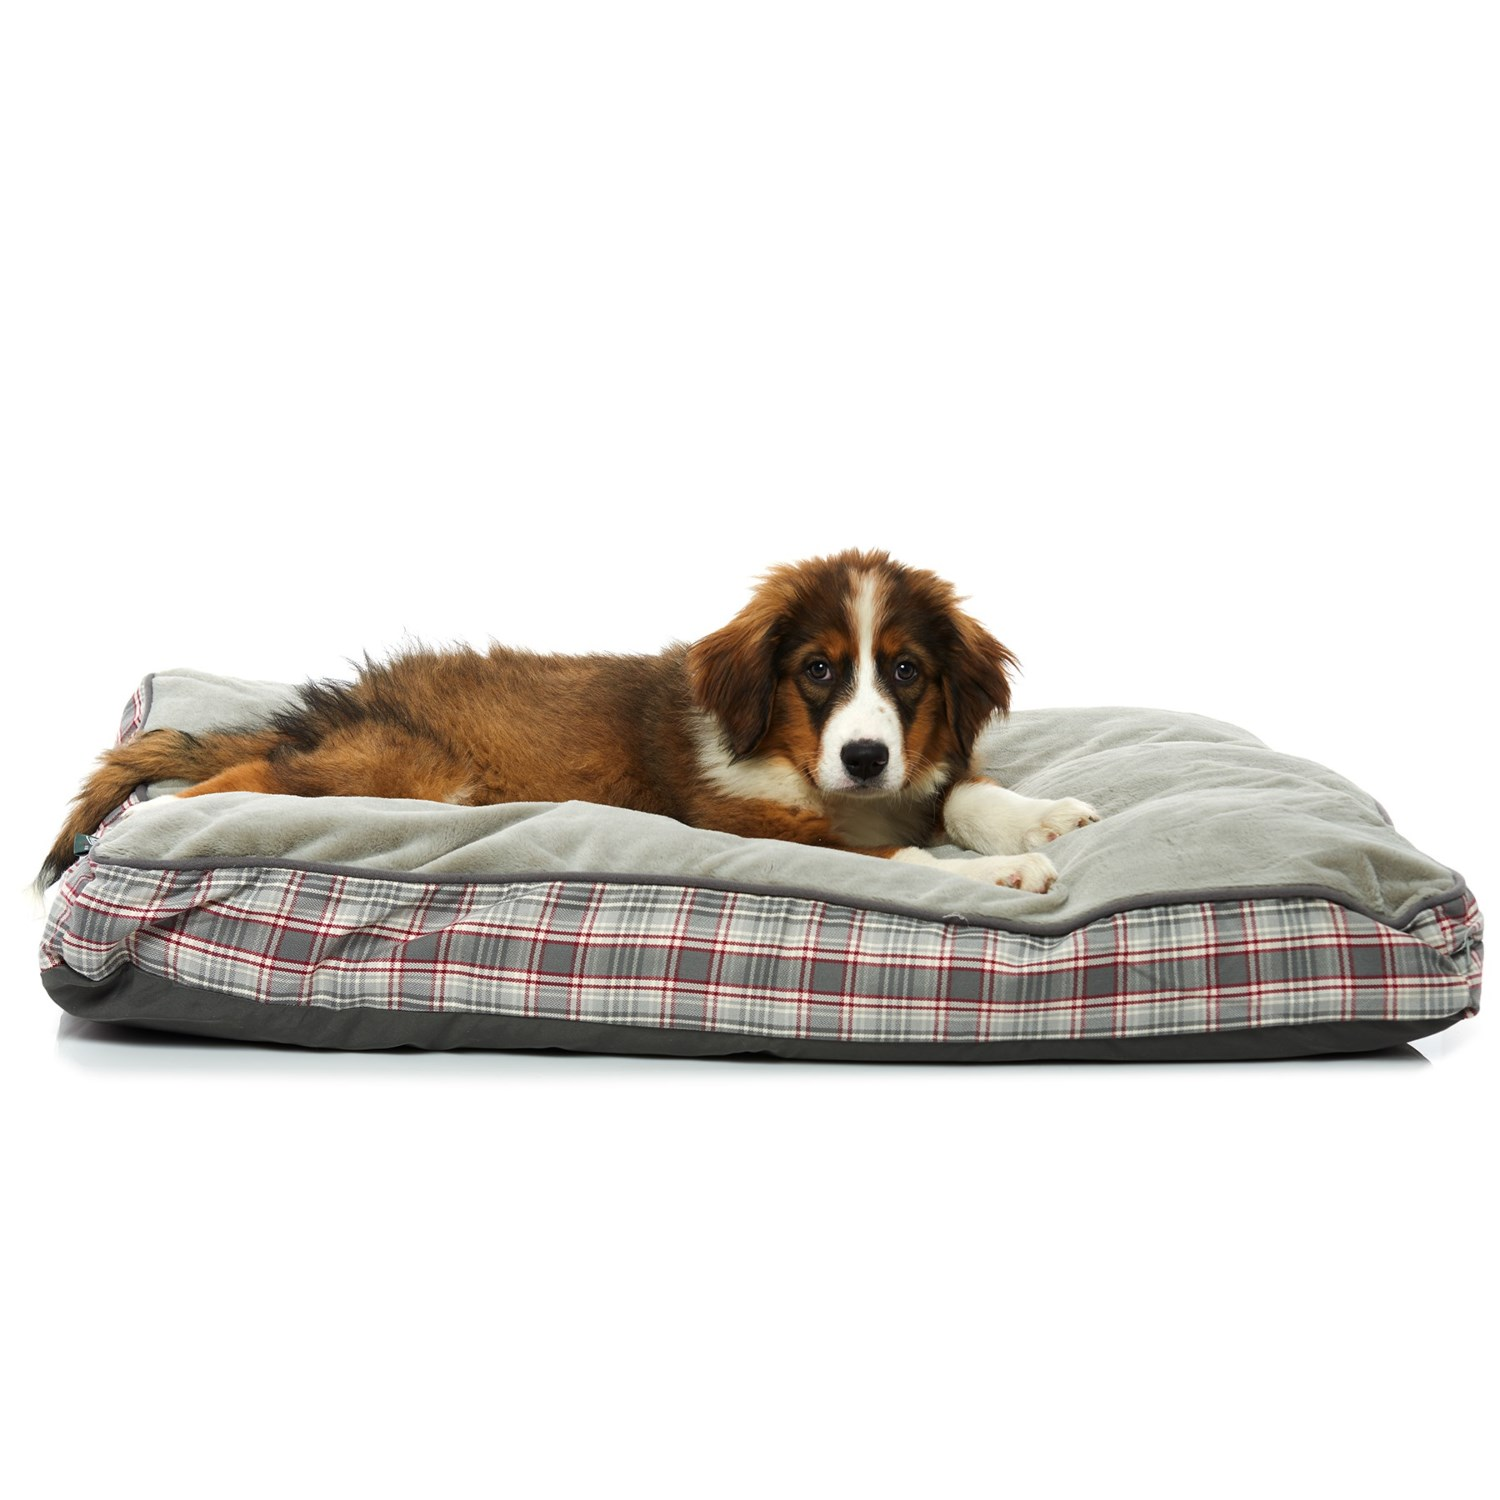 Woolrich Dog Decorative Pillow : Woolrich Aspen Plaid Gusset Pillow Dog Bed - 36x27?